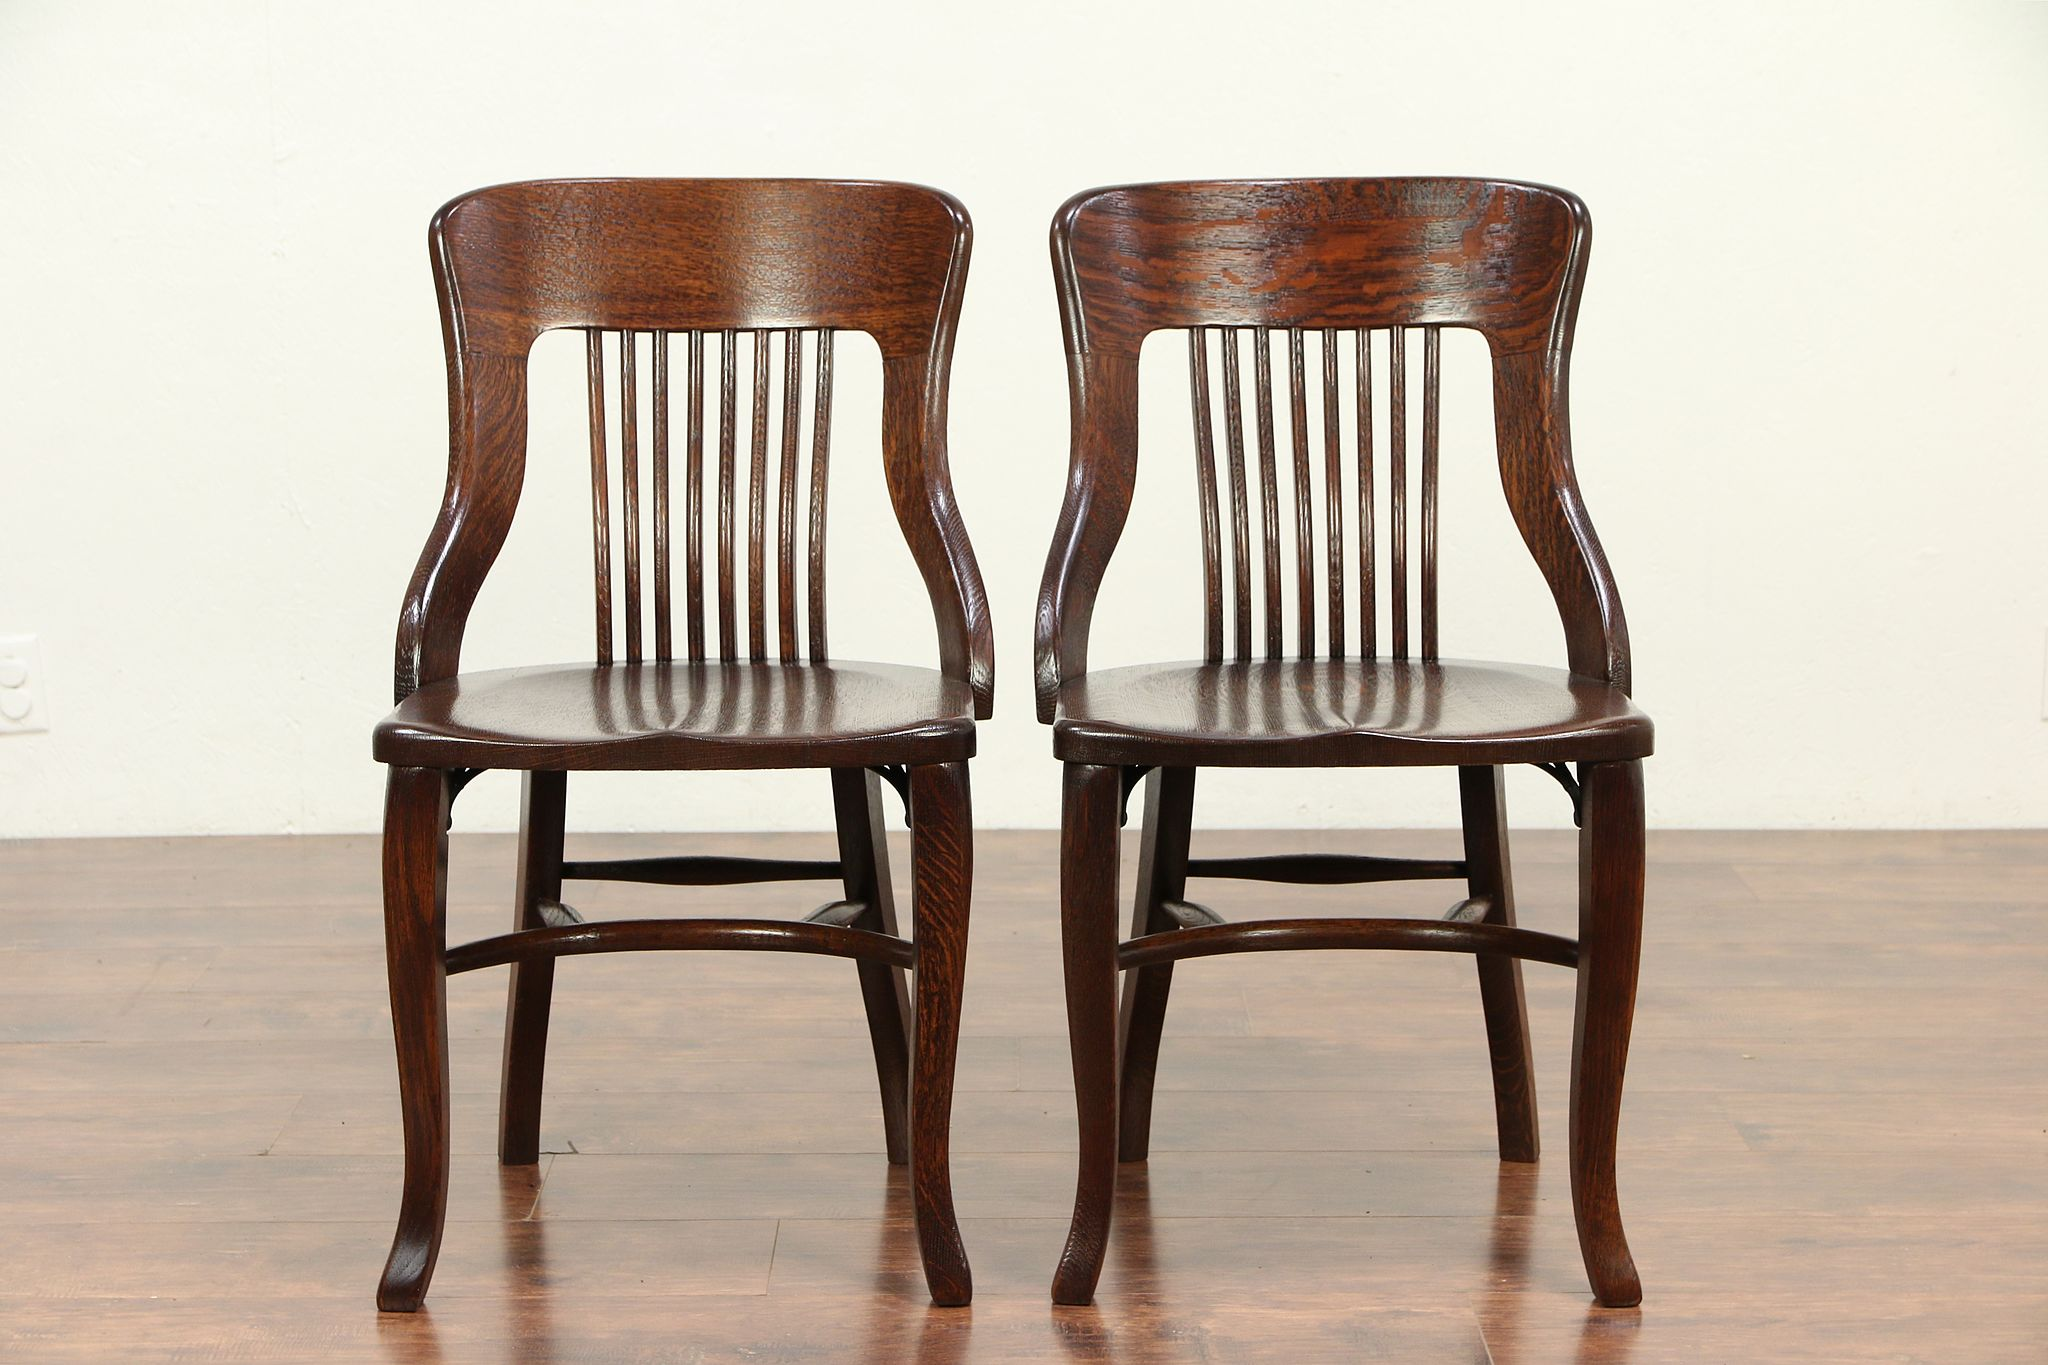 Heywood Wakefield Dining Chairs Pair Antique Quarter Sawn Oak Dining Chairs Heywood Wakefield Chicago 29261